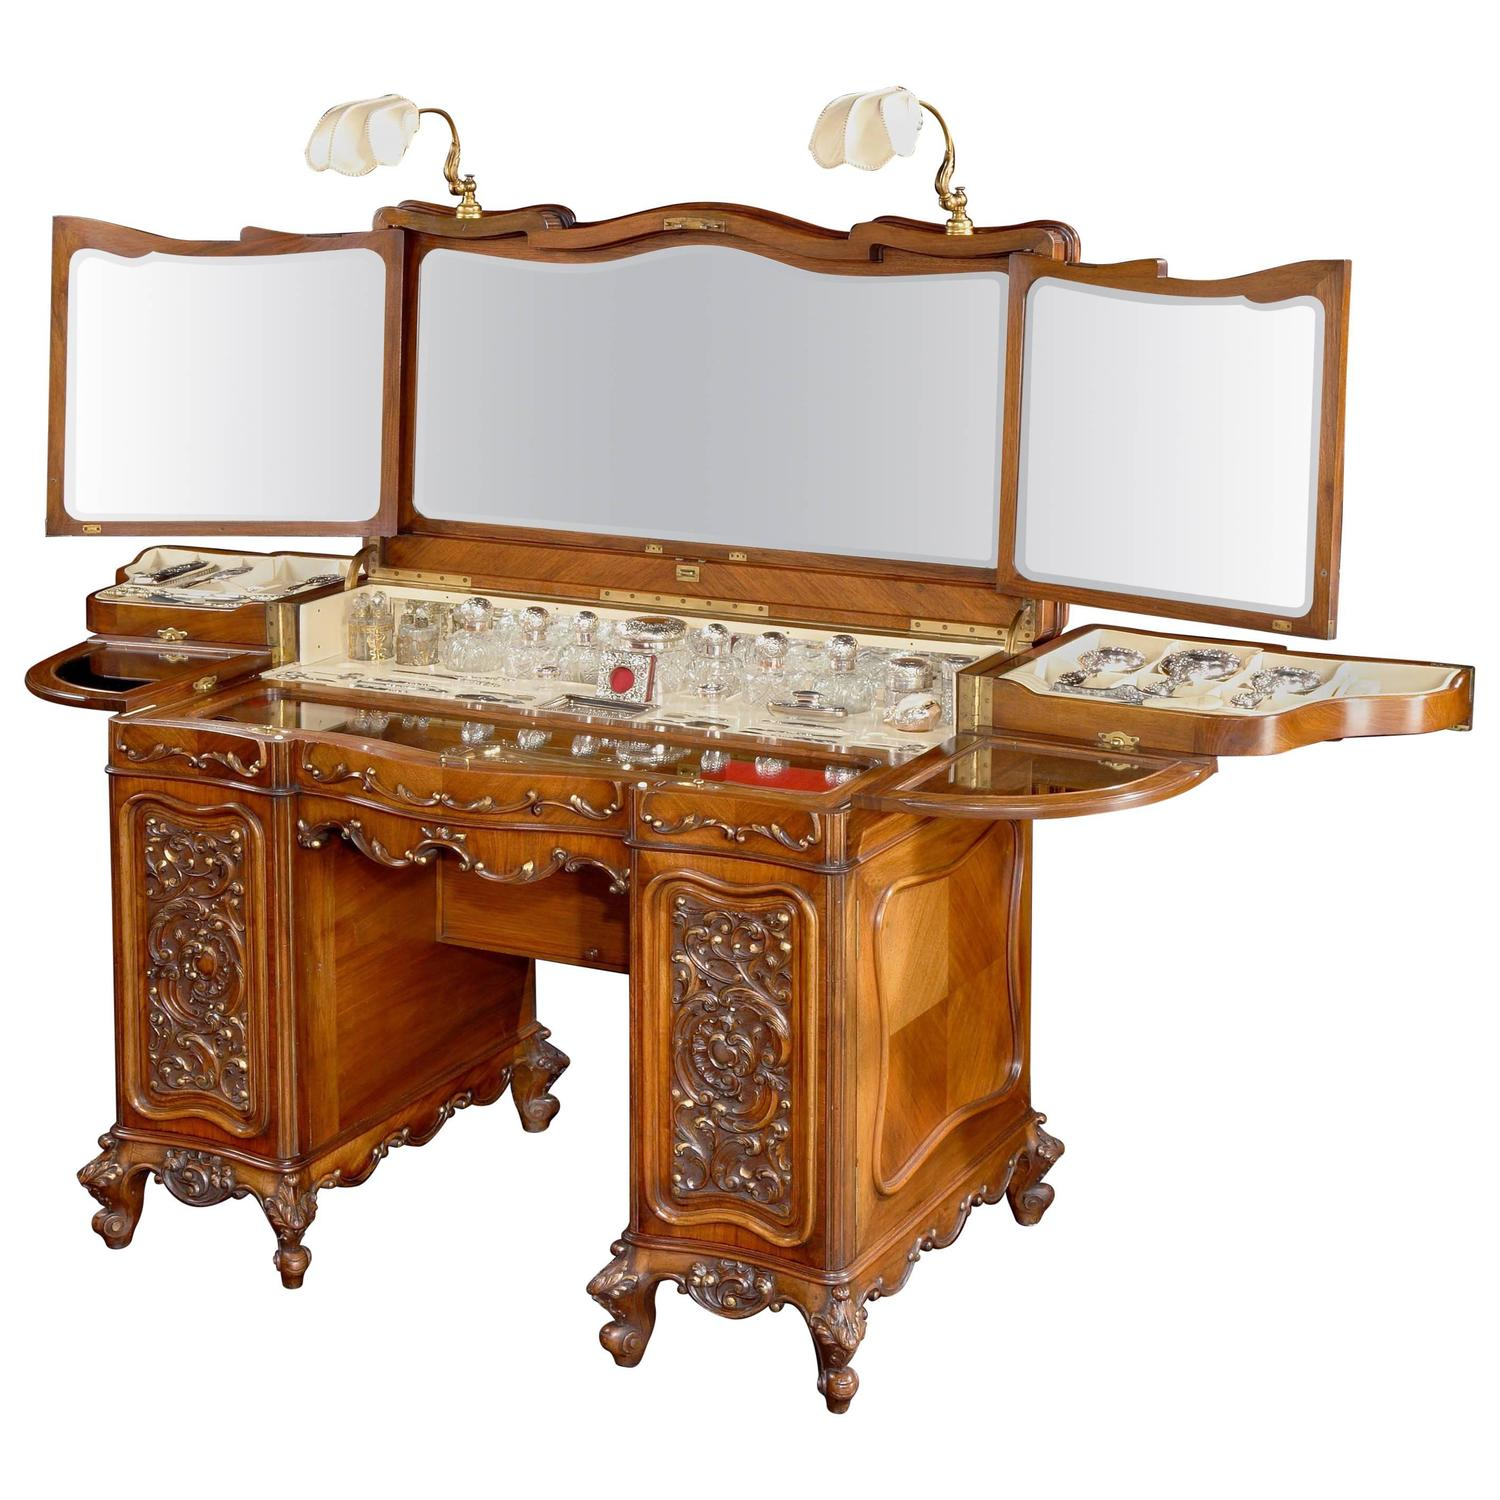 20th Century Walnut Ladies Dressing Table For Sale at 1stdibs